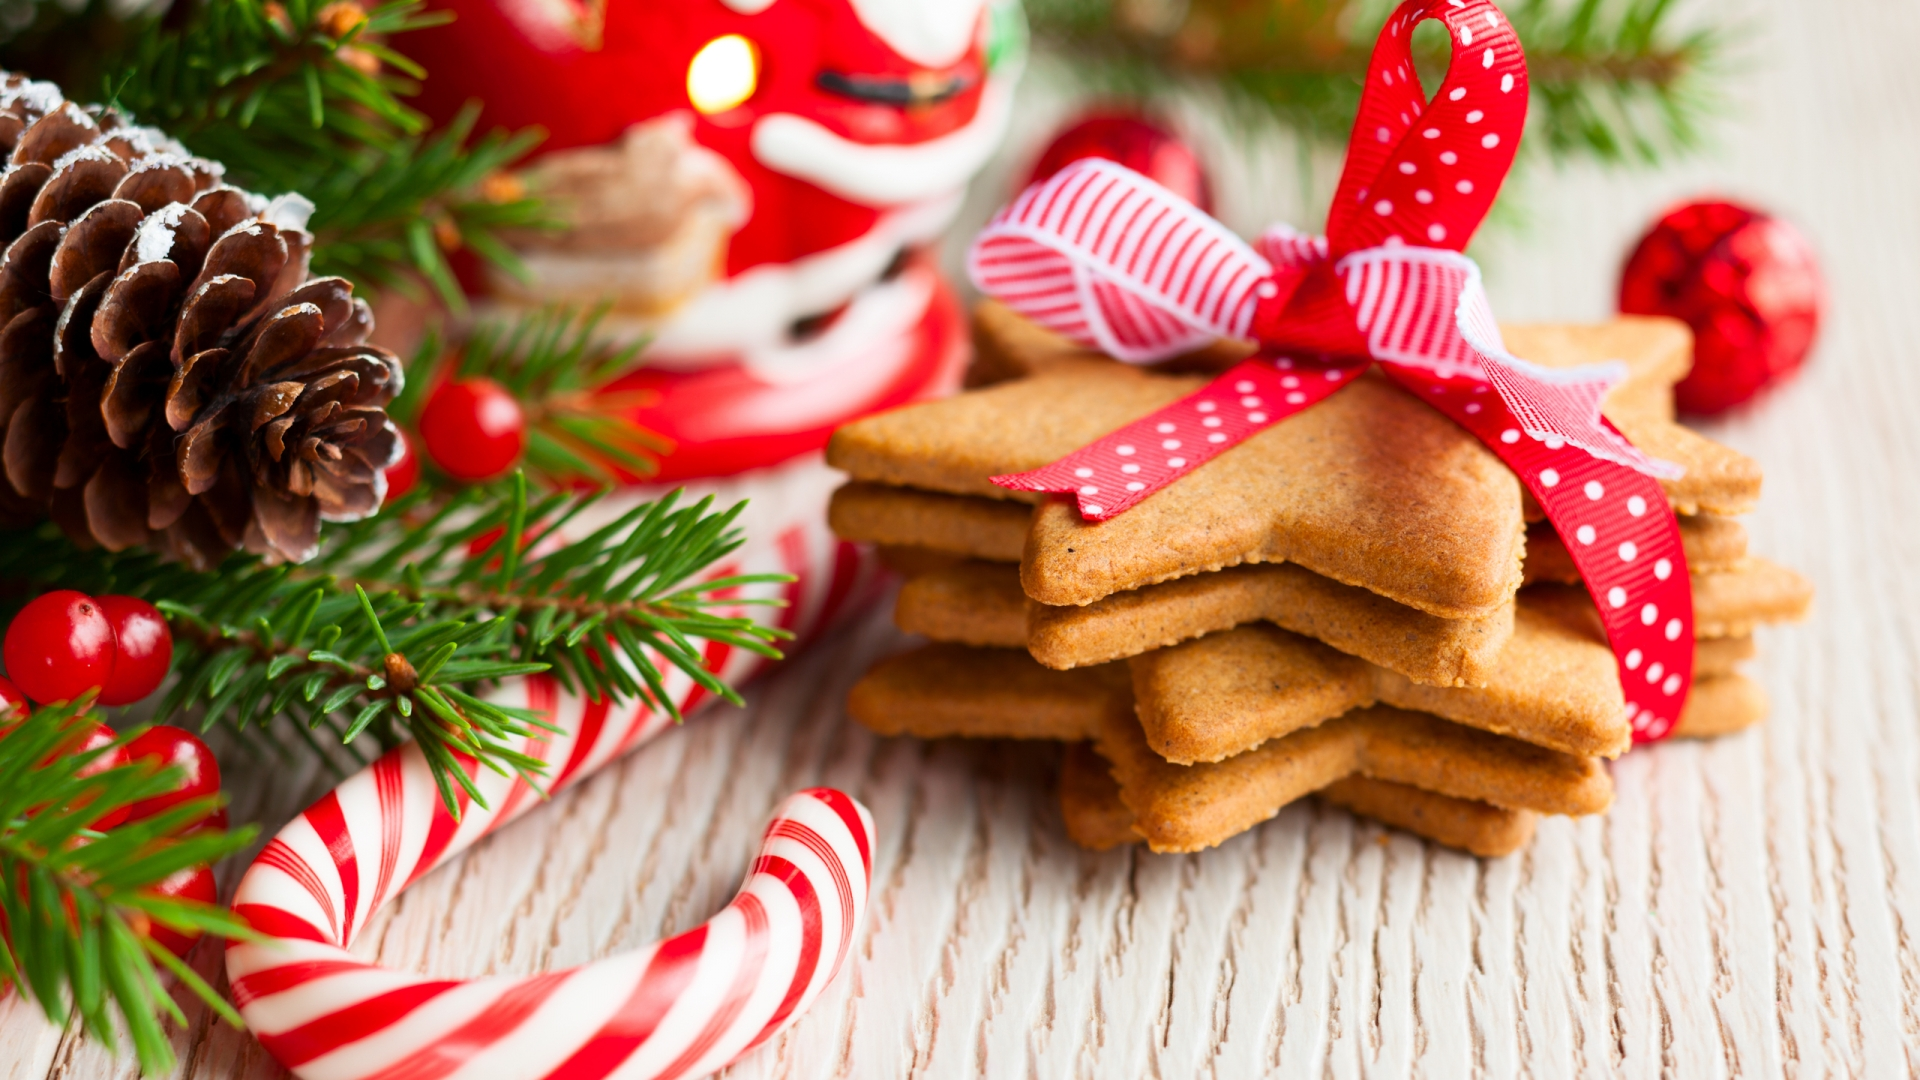 Holiday Pastries Wallpaper 40242 1680x1050 px